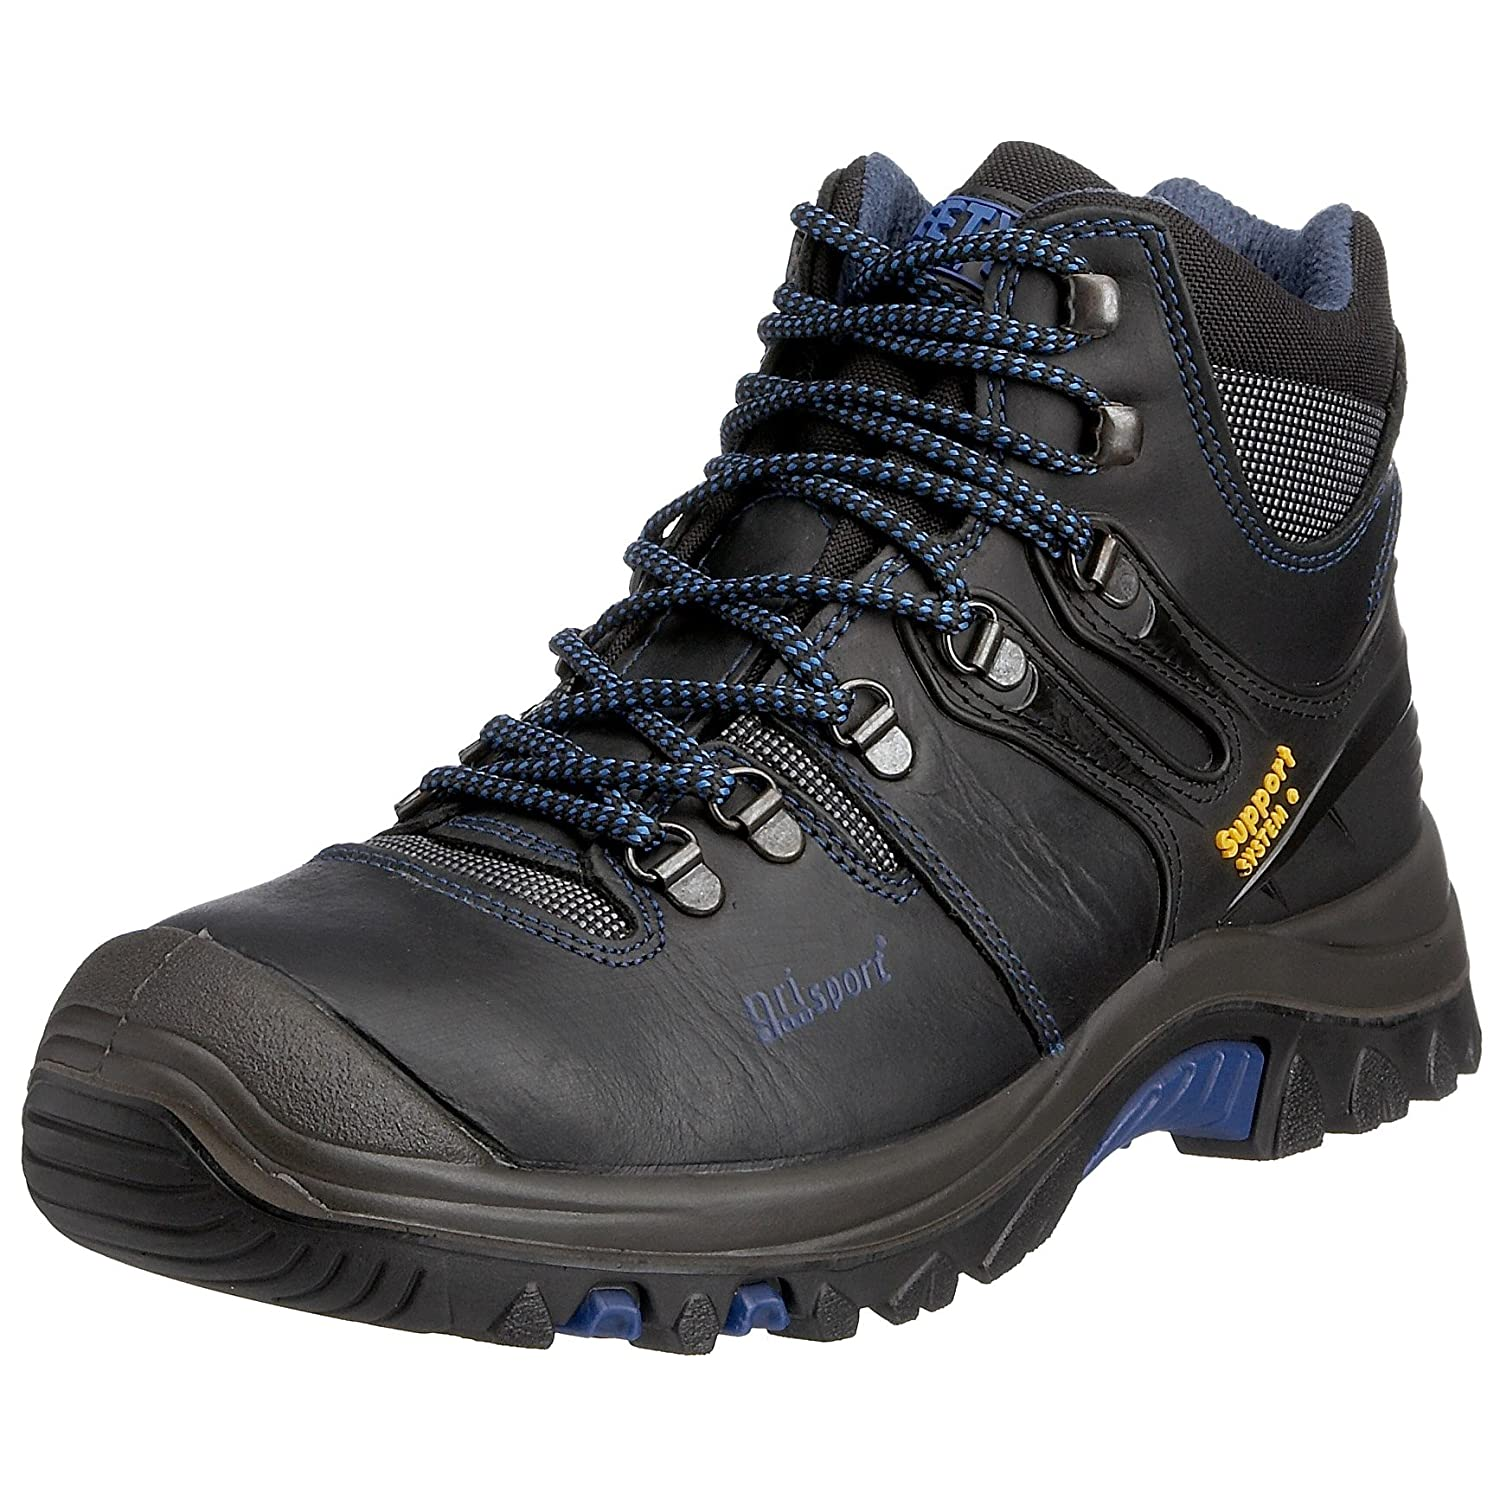 Grisport Men's Surveyor S3 Safety Boots